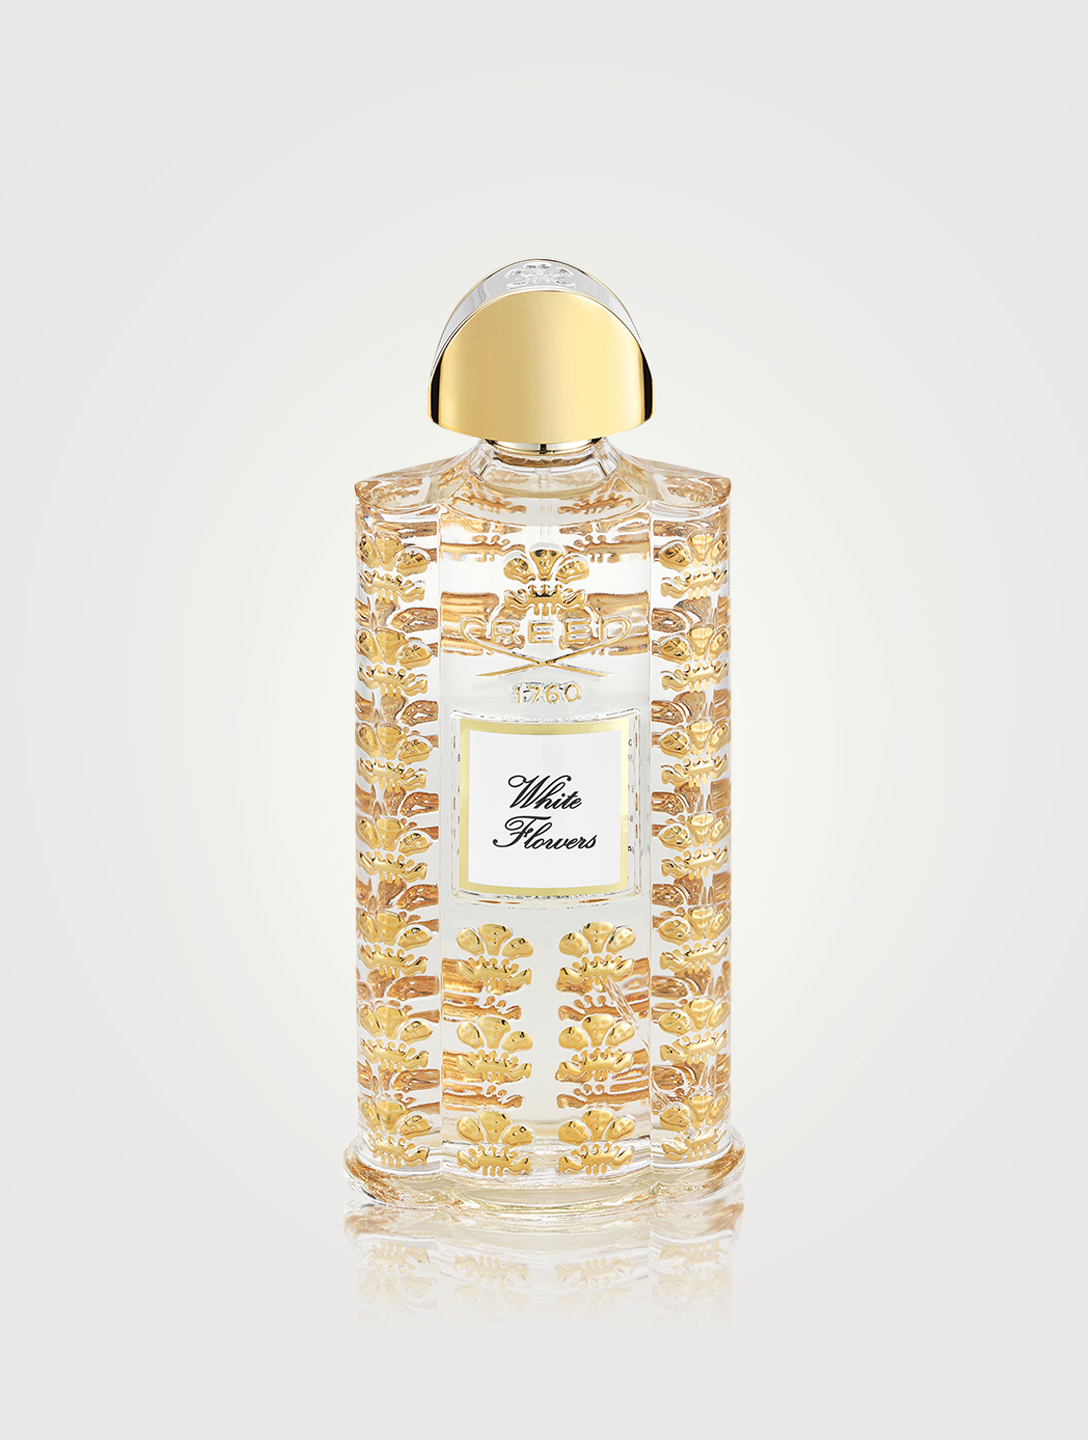 White flowers eau de parfum eau de parfum holt renfrew creed white flowers eau de parfum beauty izmirmasajfo